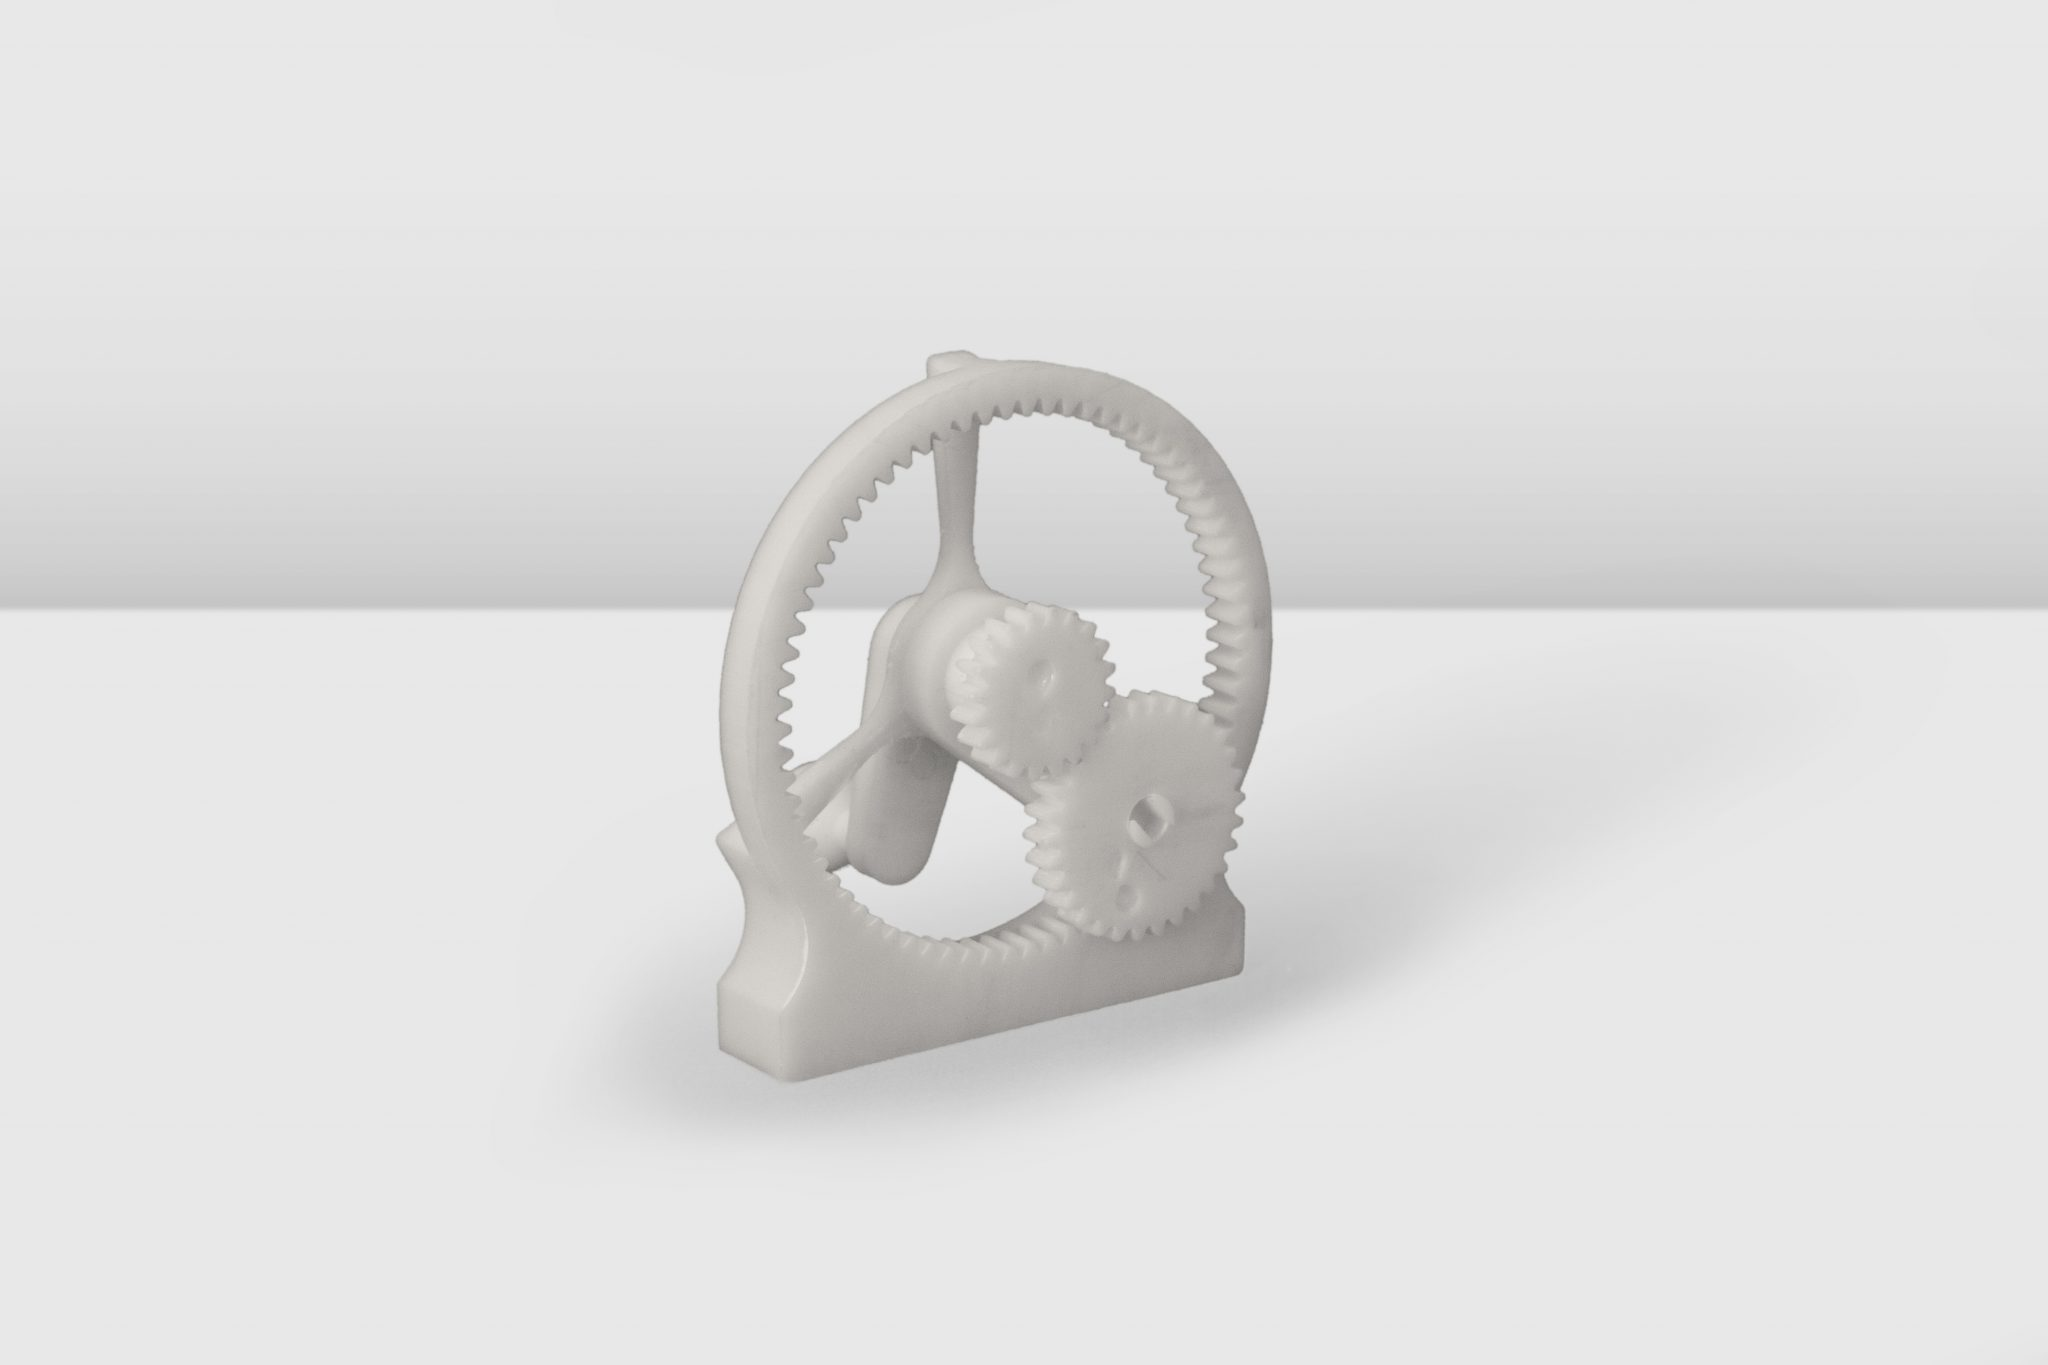 Planetary gear assembly 3D printed on the Inkspire.